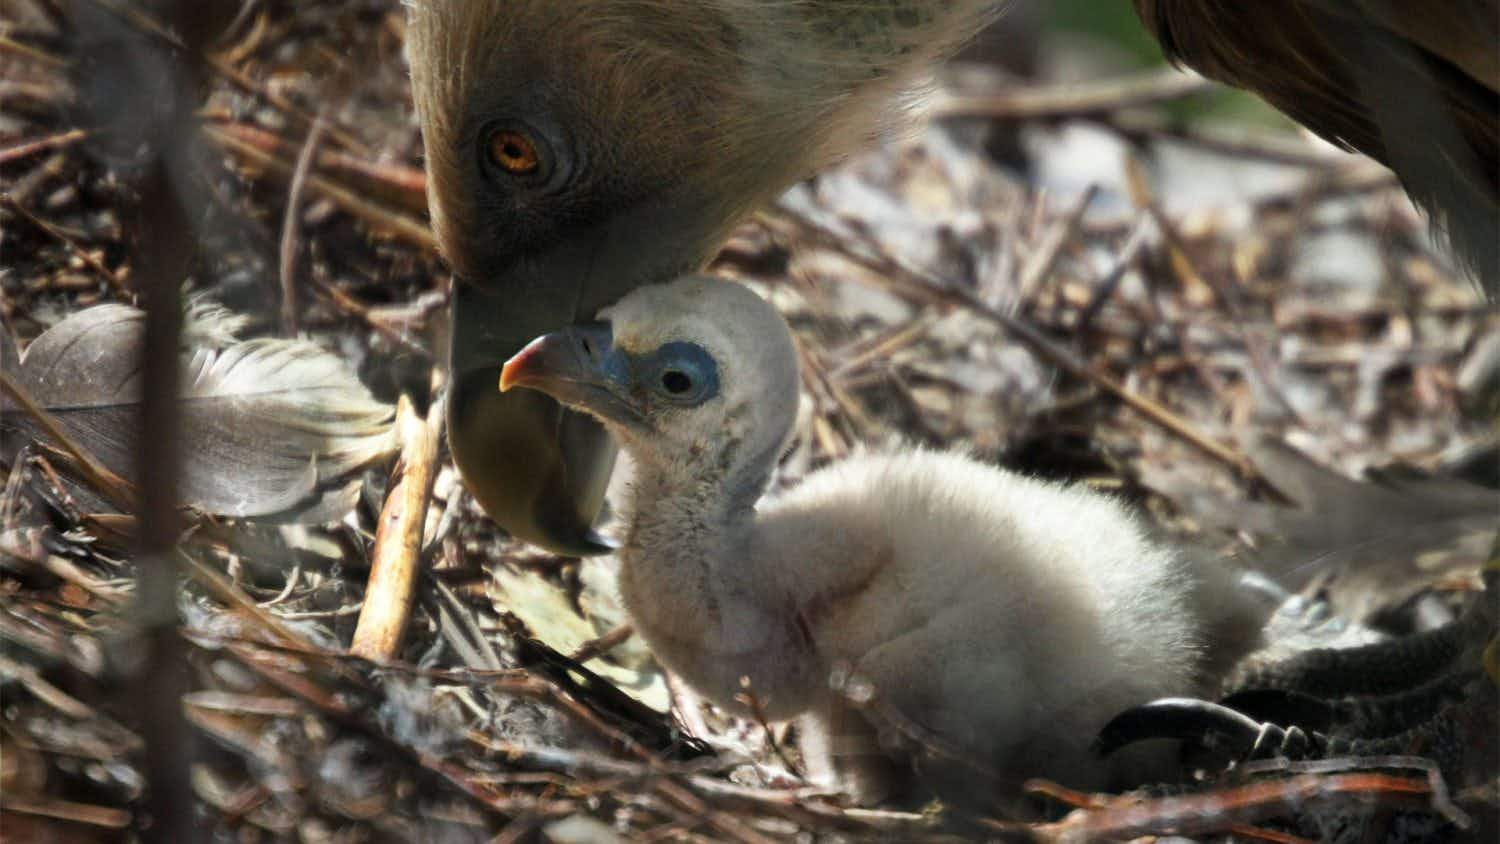 There are two new proud daddies at a Dutch zoo, where a gay vulture couple has hatched a baby chick